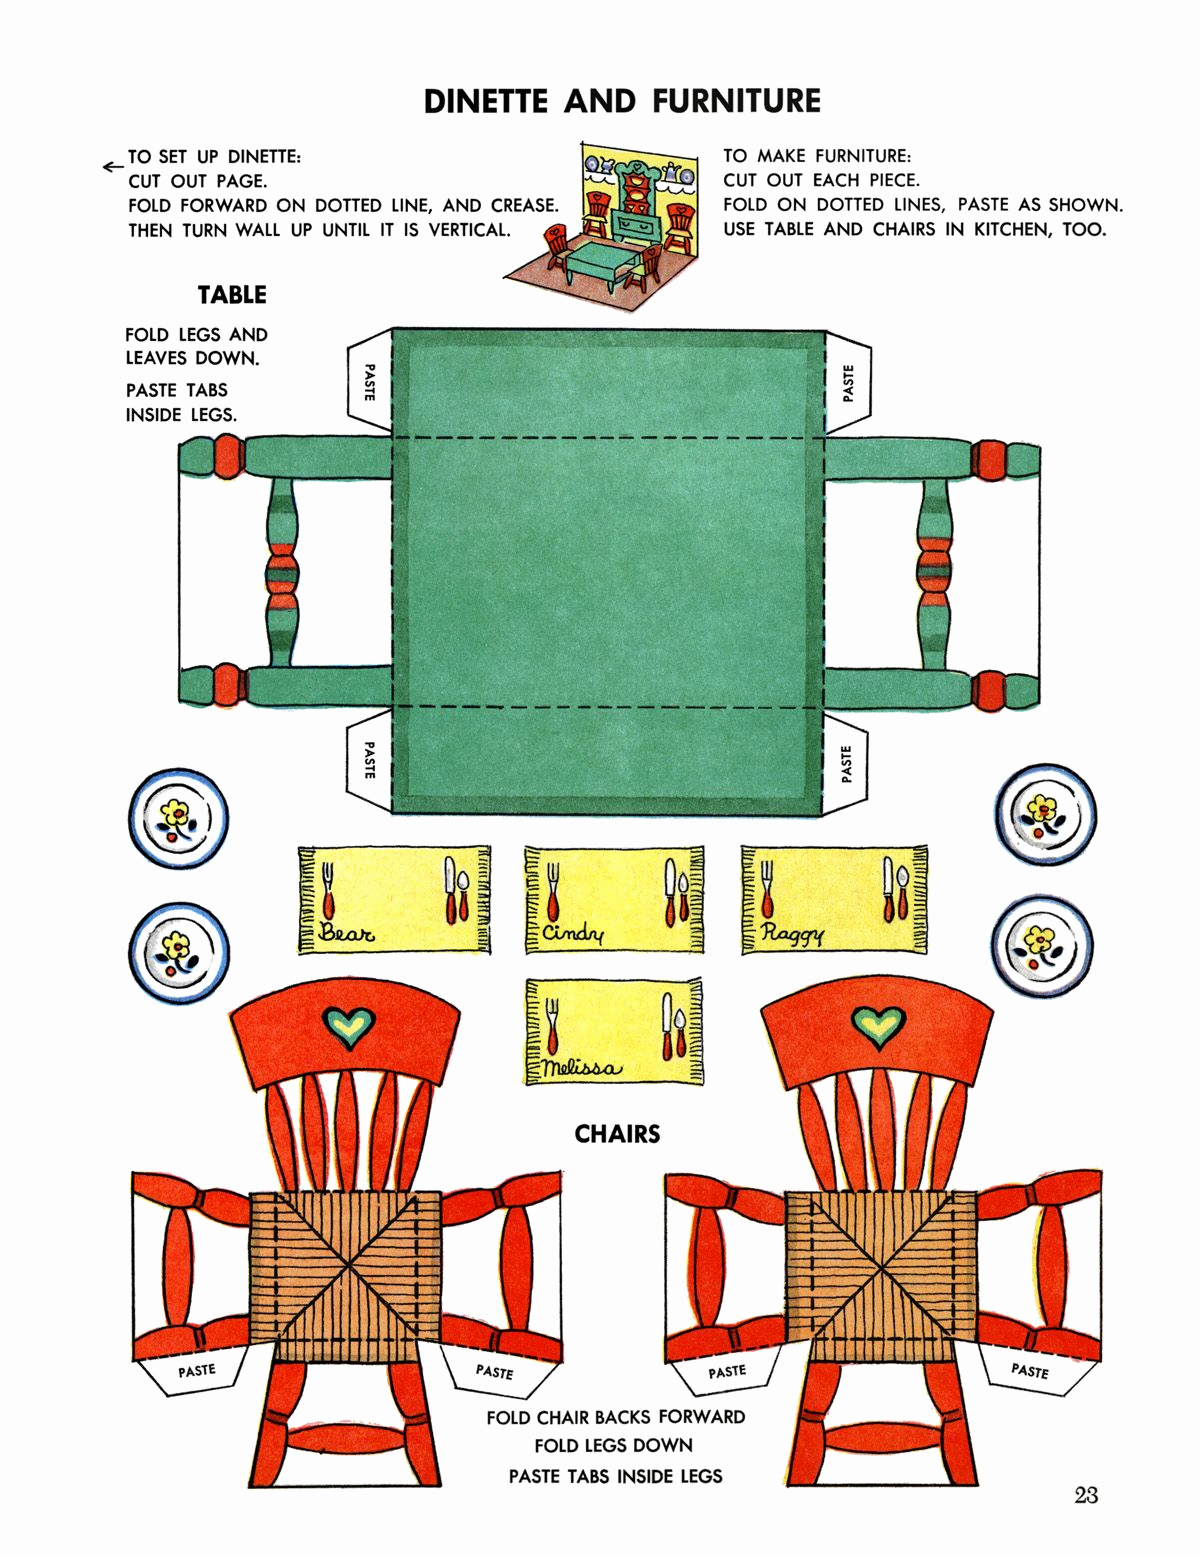 Paper Cut Outs Templates New Miniature Printables Dining Table and Chairs V